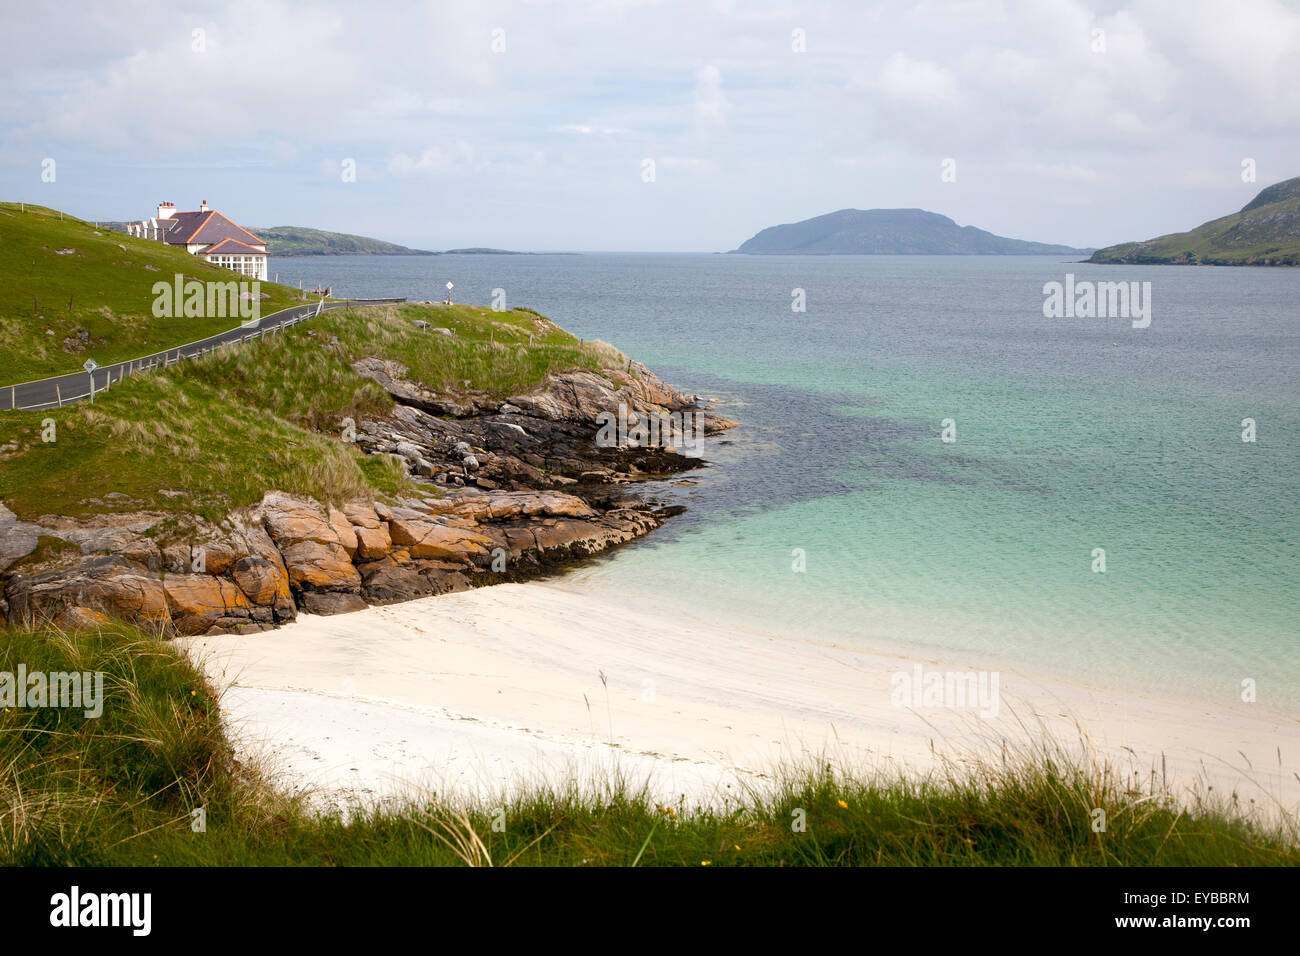 Sandy beach and aquamarine sea at Vatersay Bay, Barra, Outer Hebrides, Scotland, UK - Stock Image